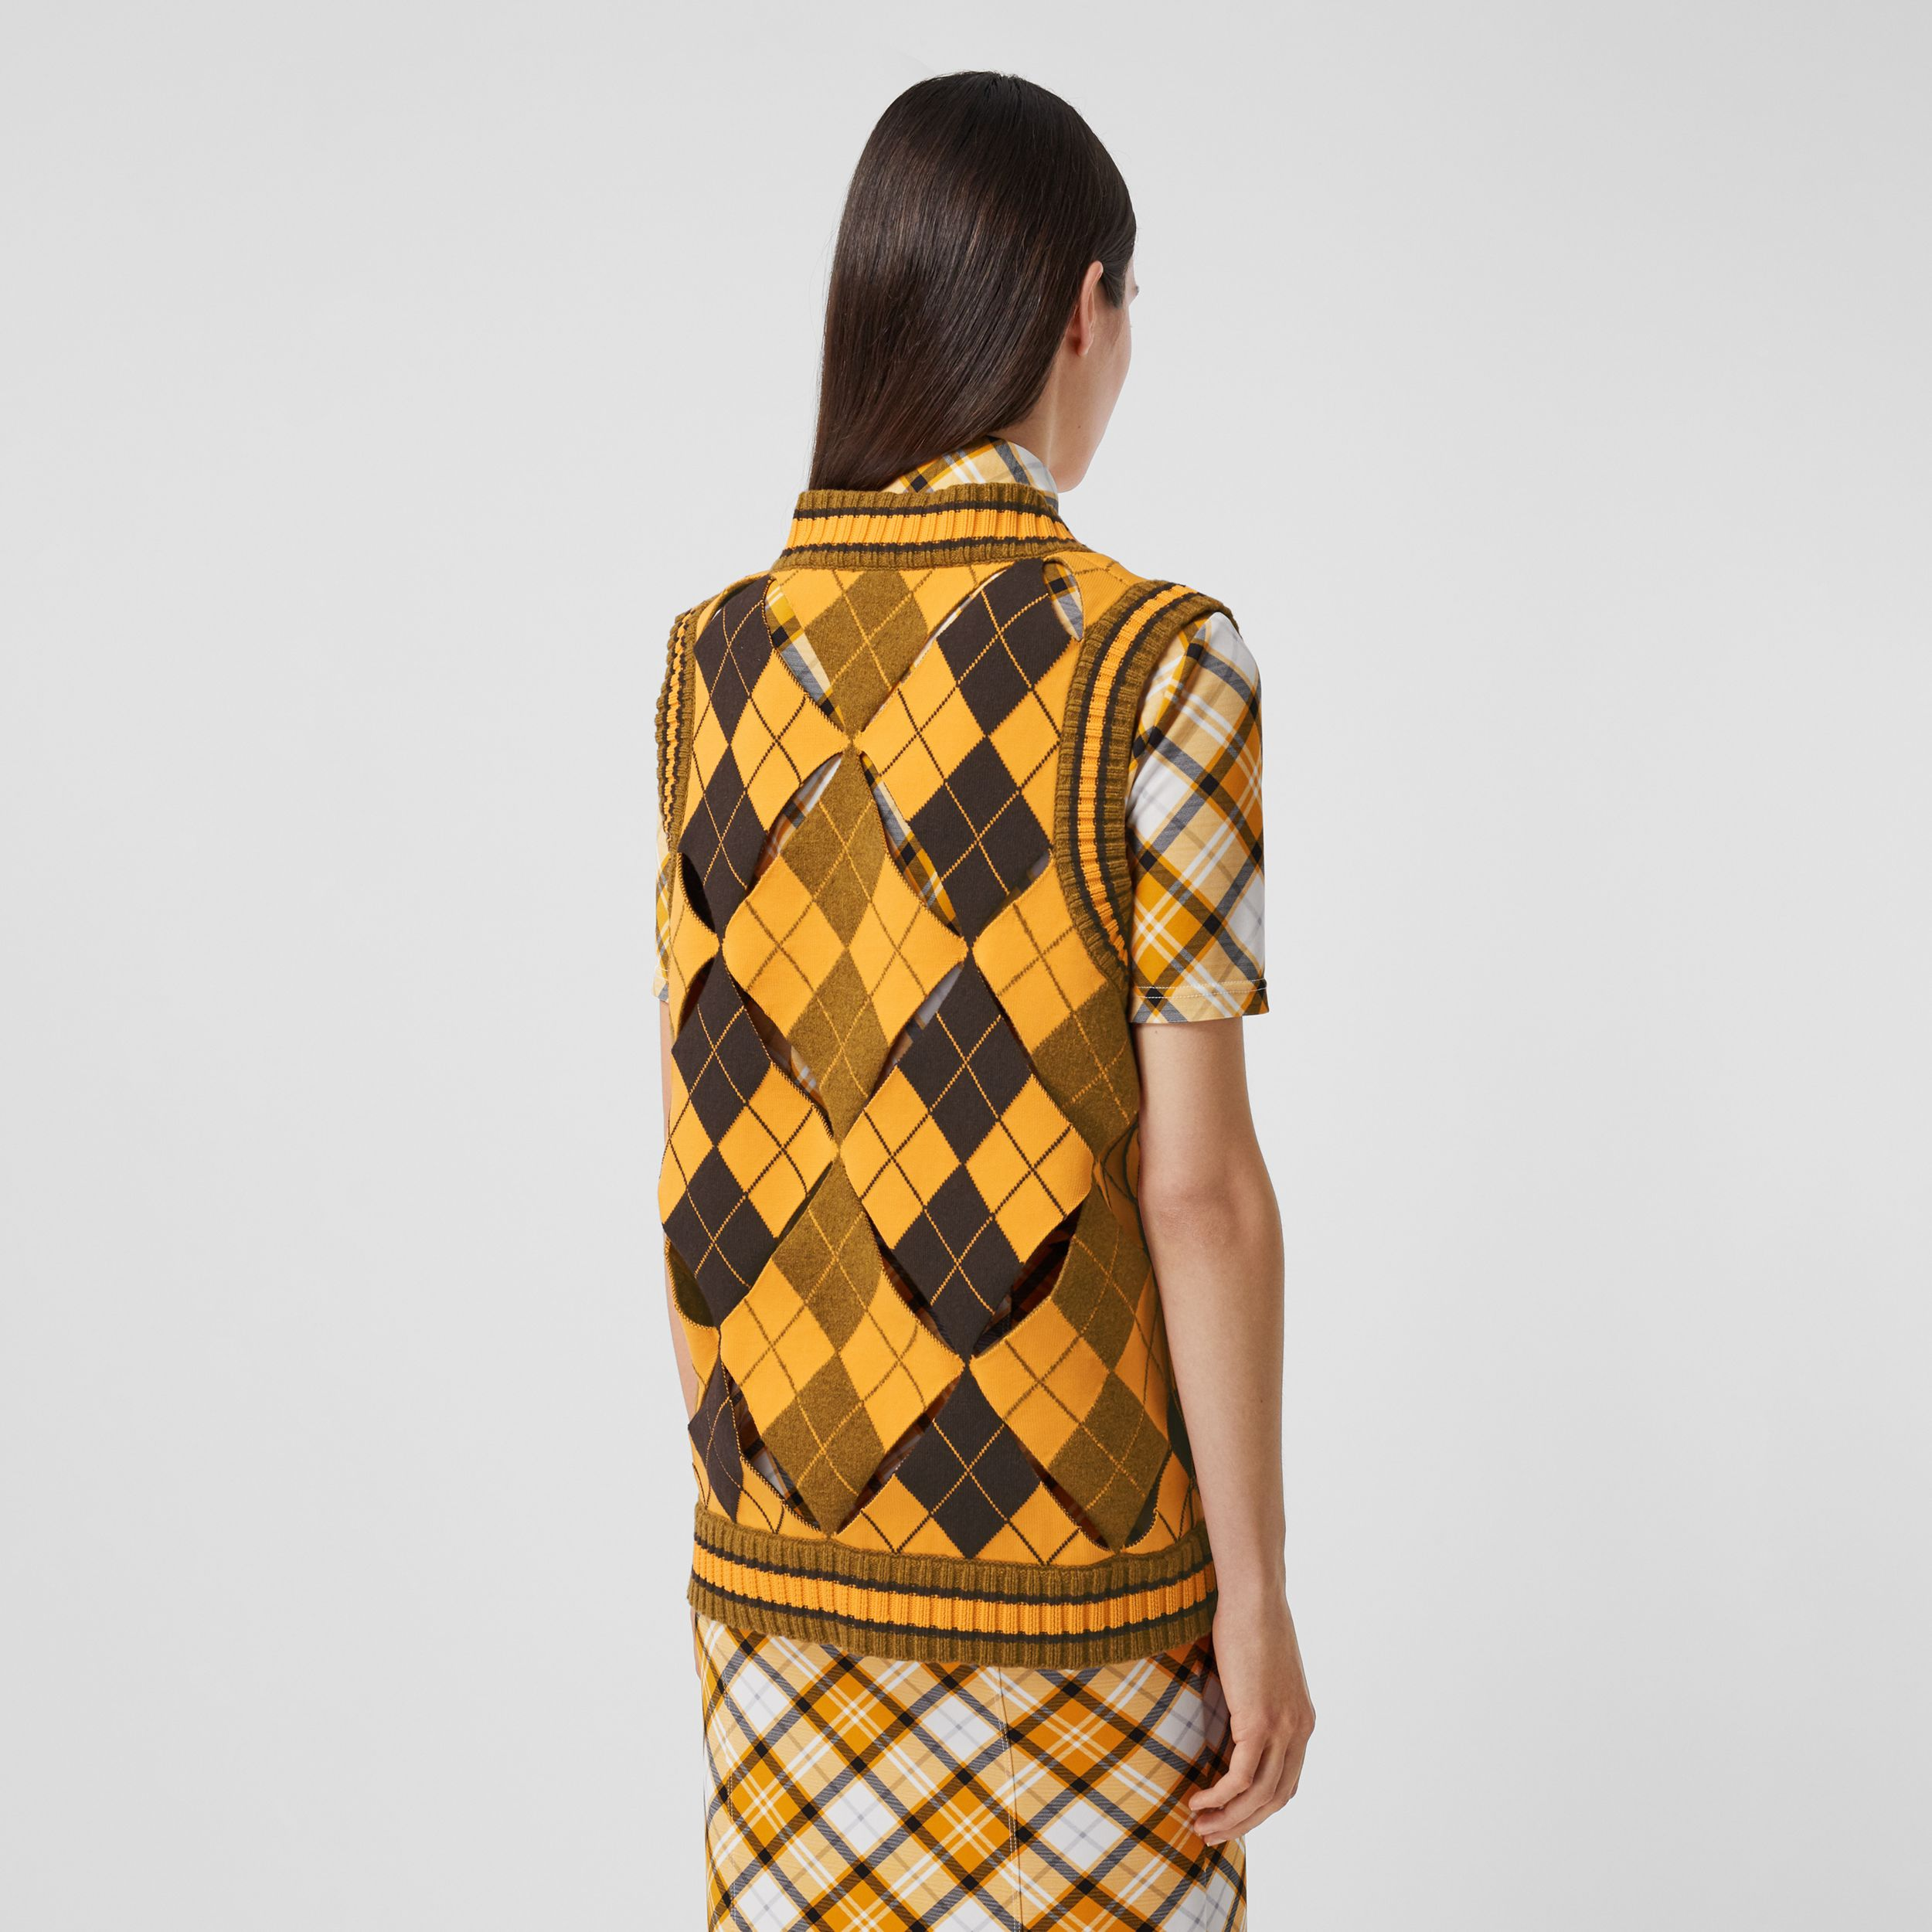 Cut-out Detail Argyle Technical Wool Jacquard Vest in Bright Orange - Women | Burberry Hong Kong S.A.R. - 3